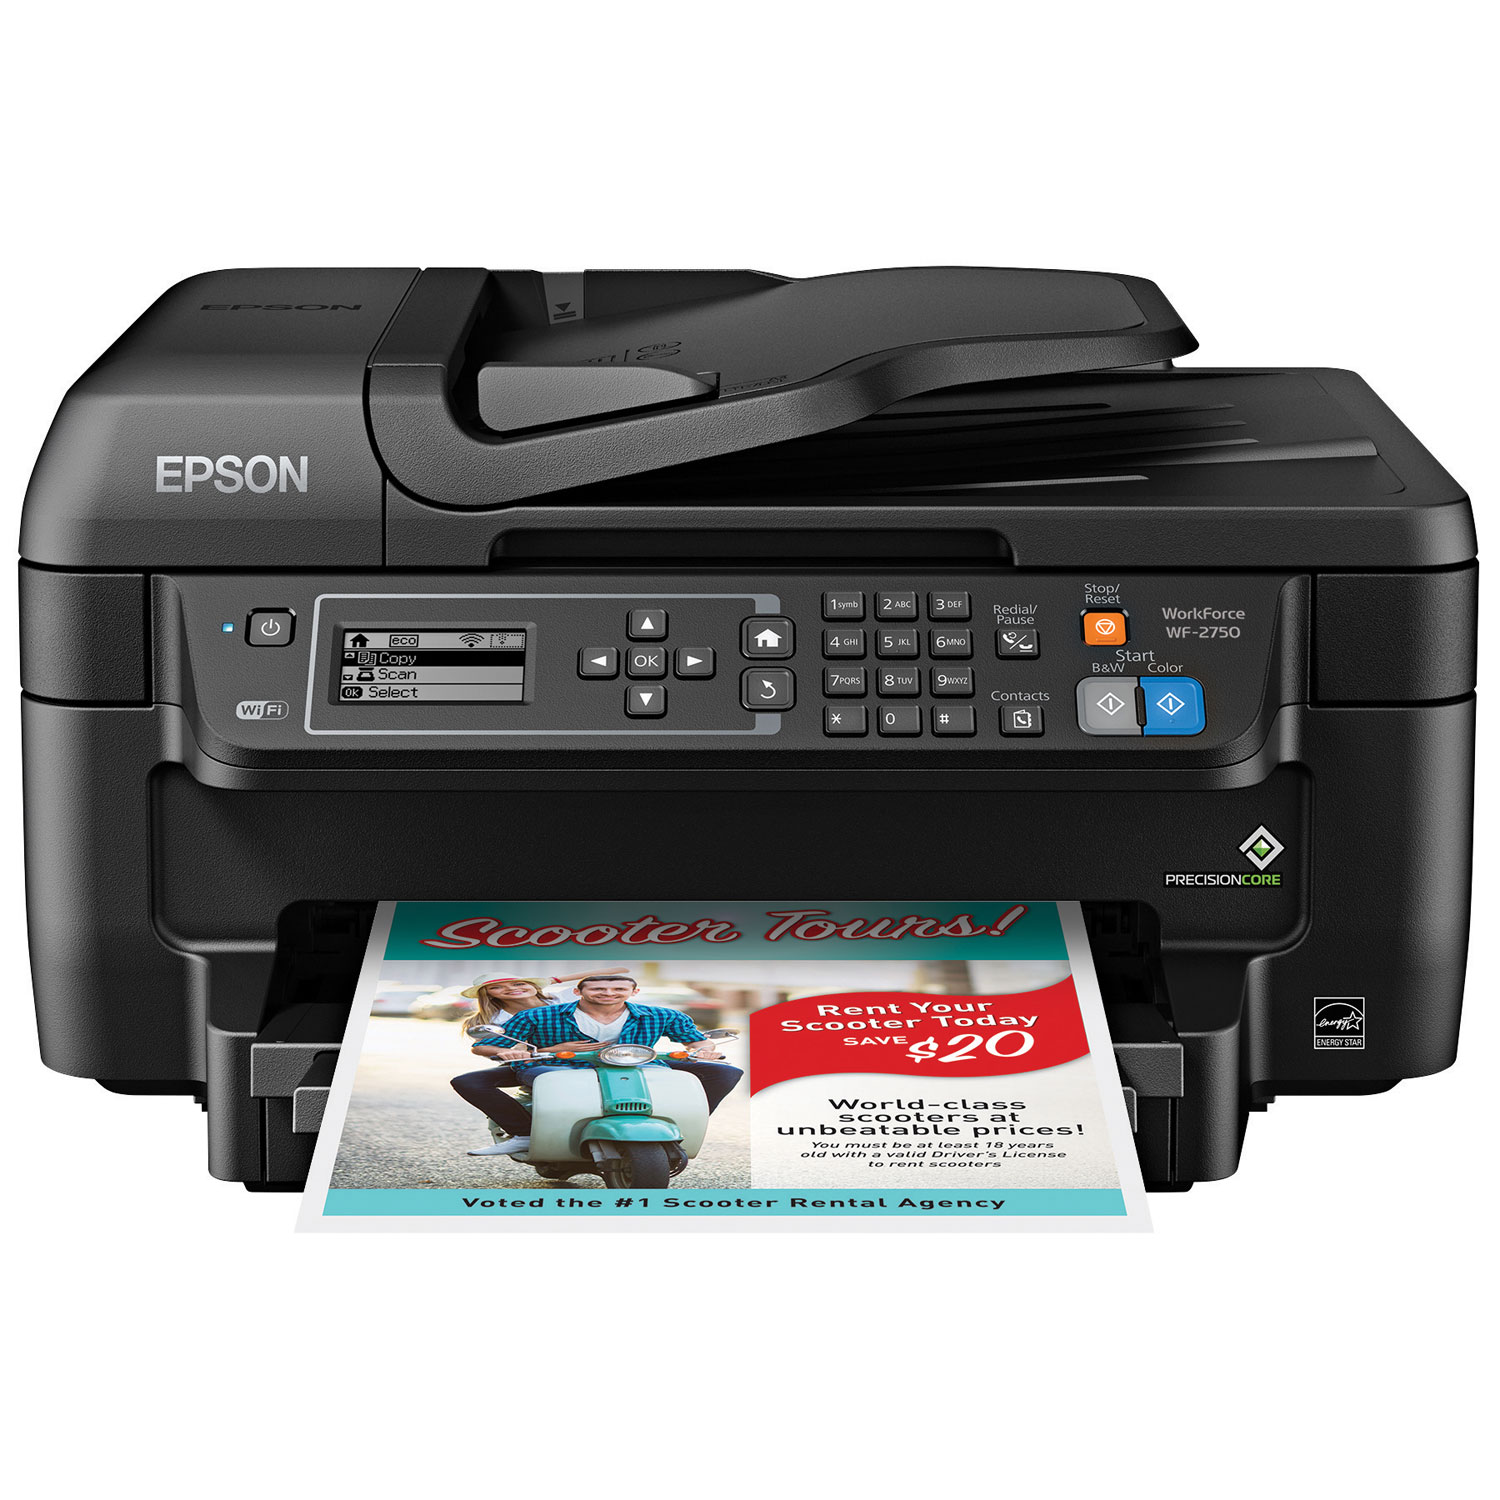 Color printing vs black and white cost - Epson Workforce Wf 2750 Wireless All In One Inkjet Printer